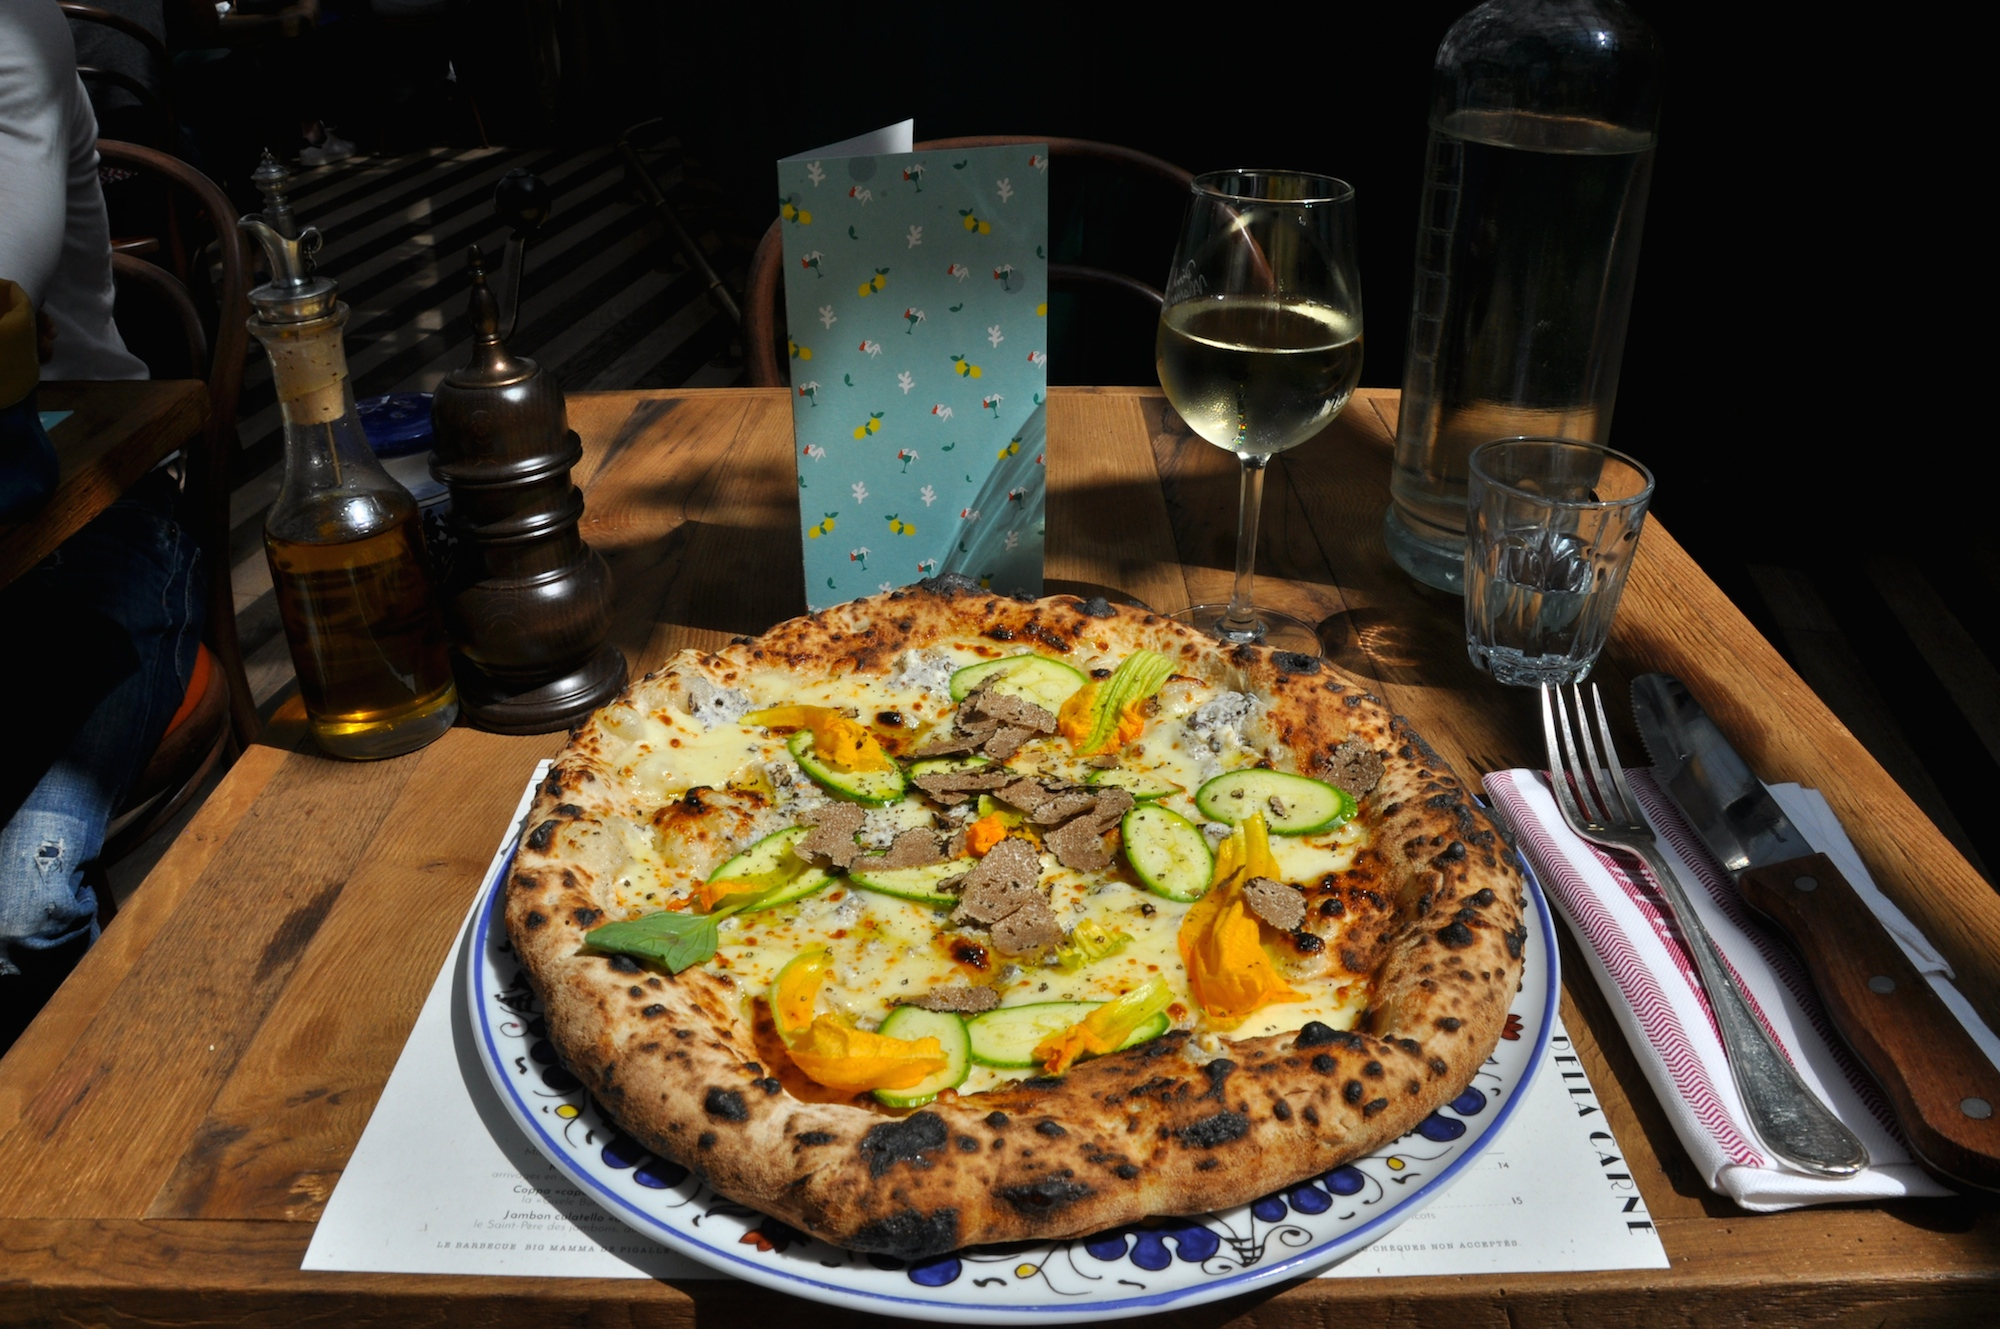 The Big Mamma Group offers Trendy, Fresh, Authentic Italian Dining in Paris, including stone-baked pizzas with veggie and truffle toppings like this one, set on a wooden table besides a glass of white wine.